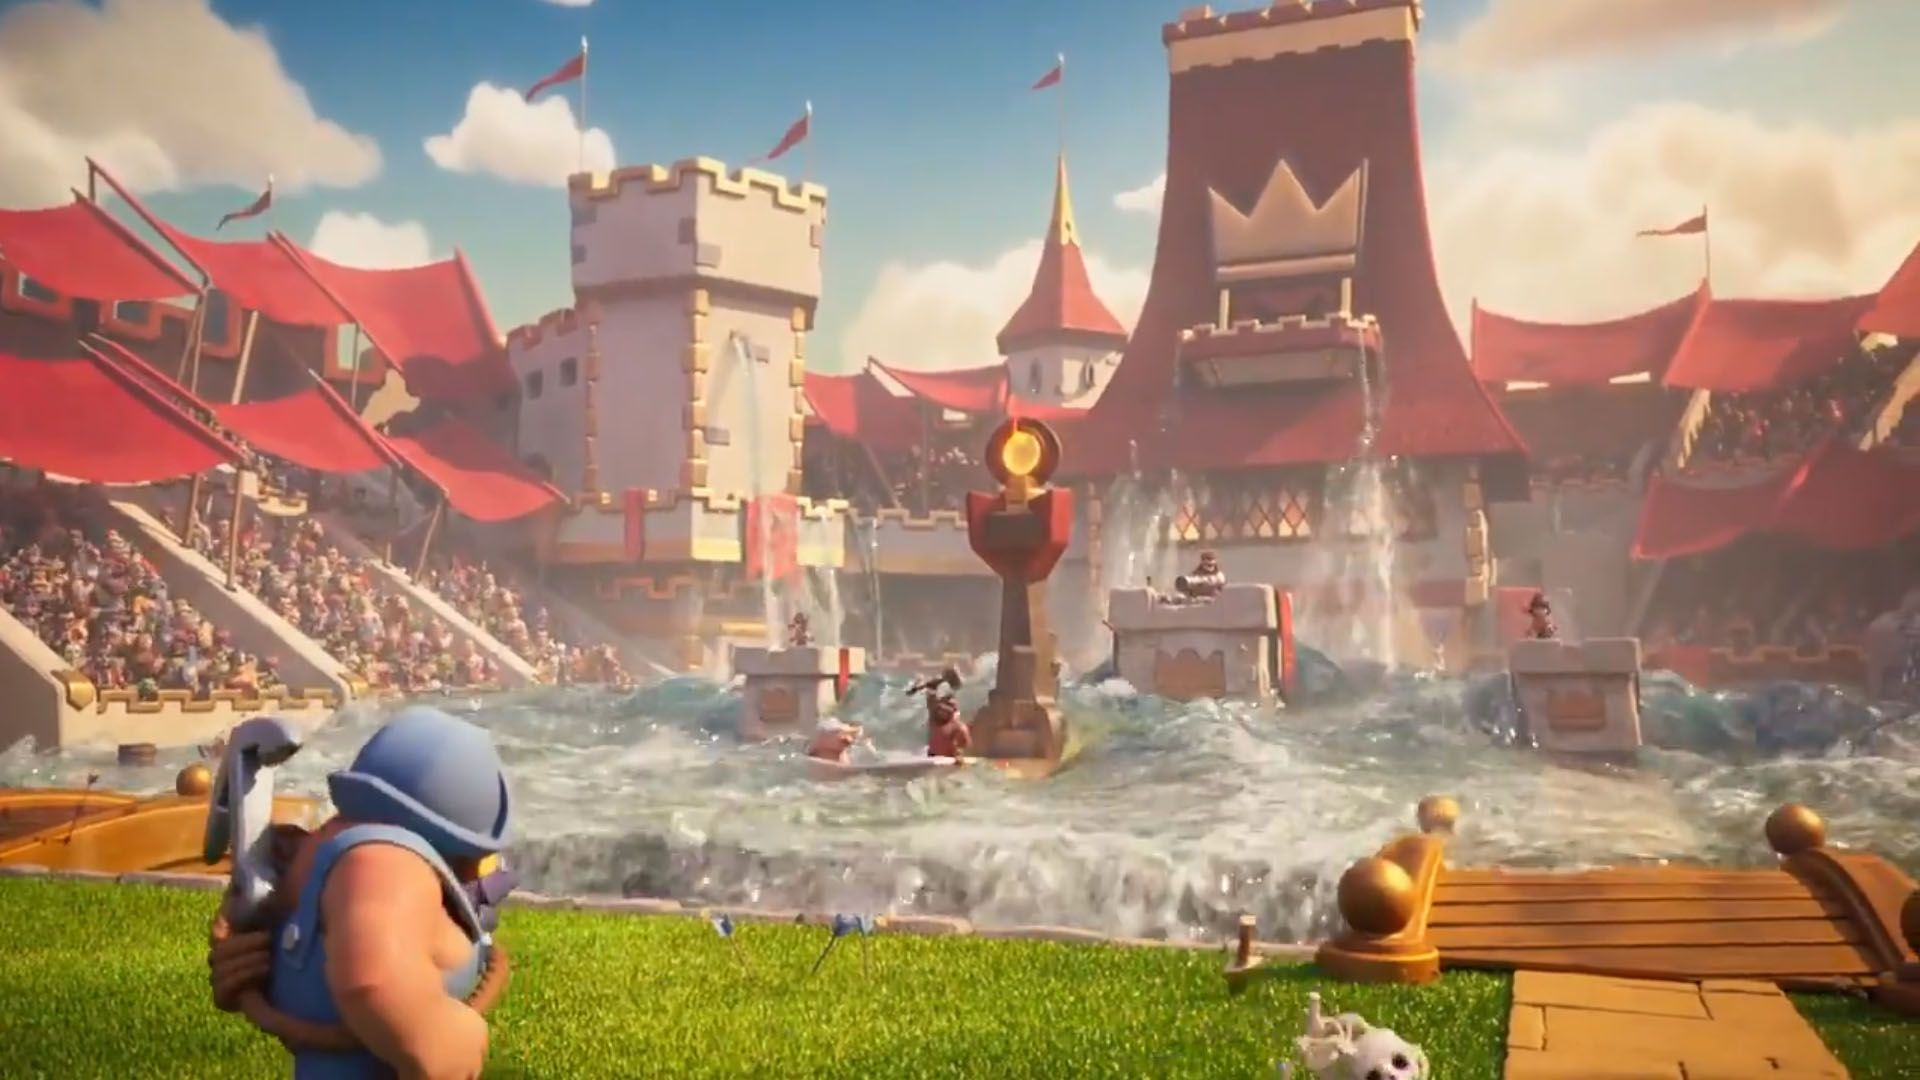 Descargar Clash Royale 2.8.0 APK para Android